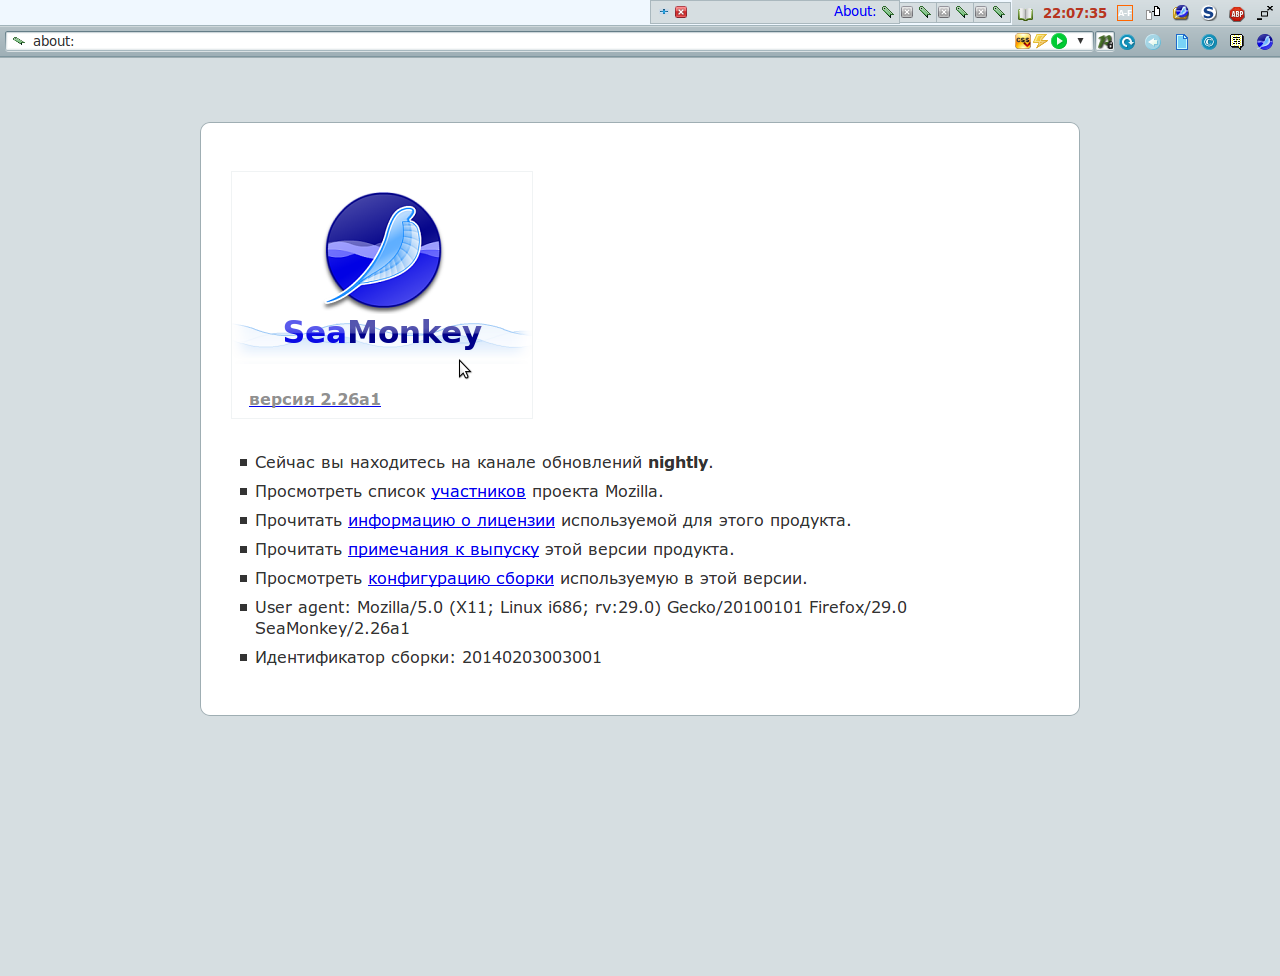 https://forum.mozilla-russia.org/uploaded/About:SeaMonkey.png